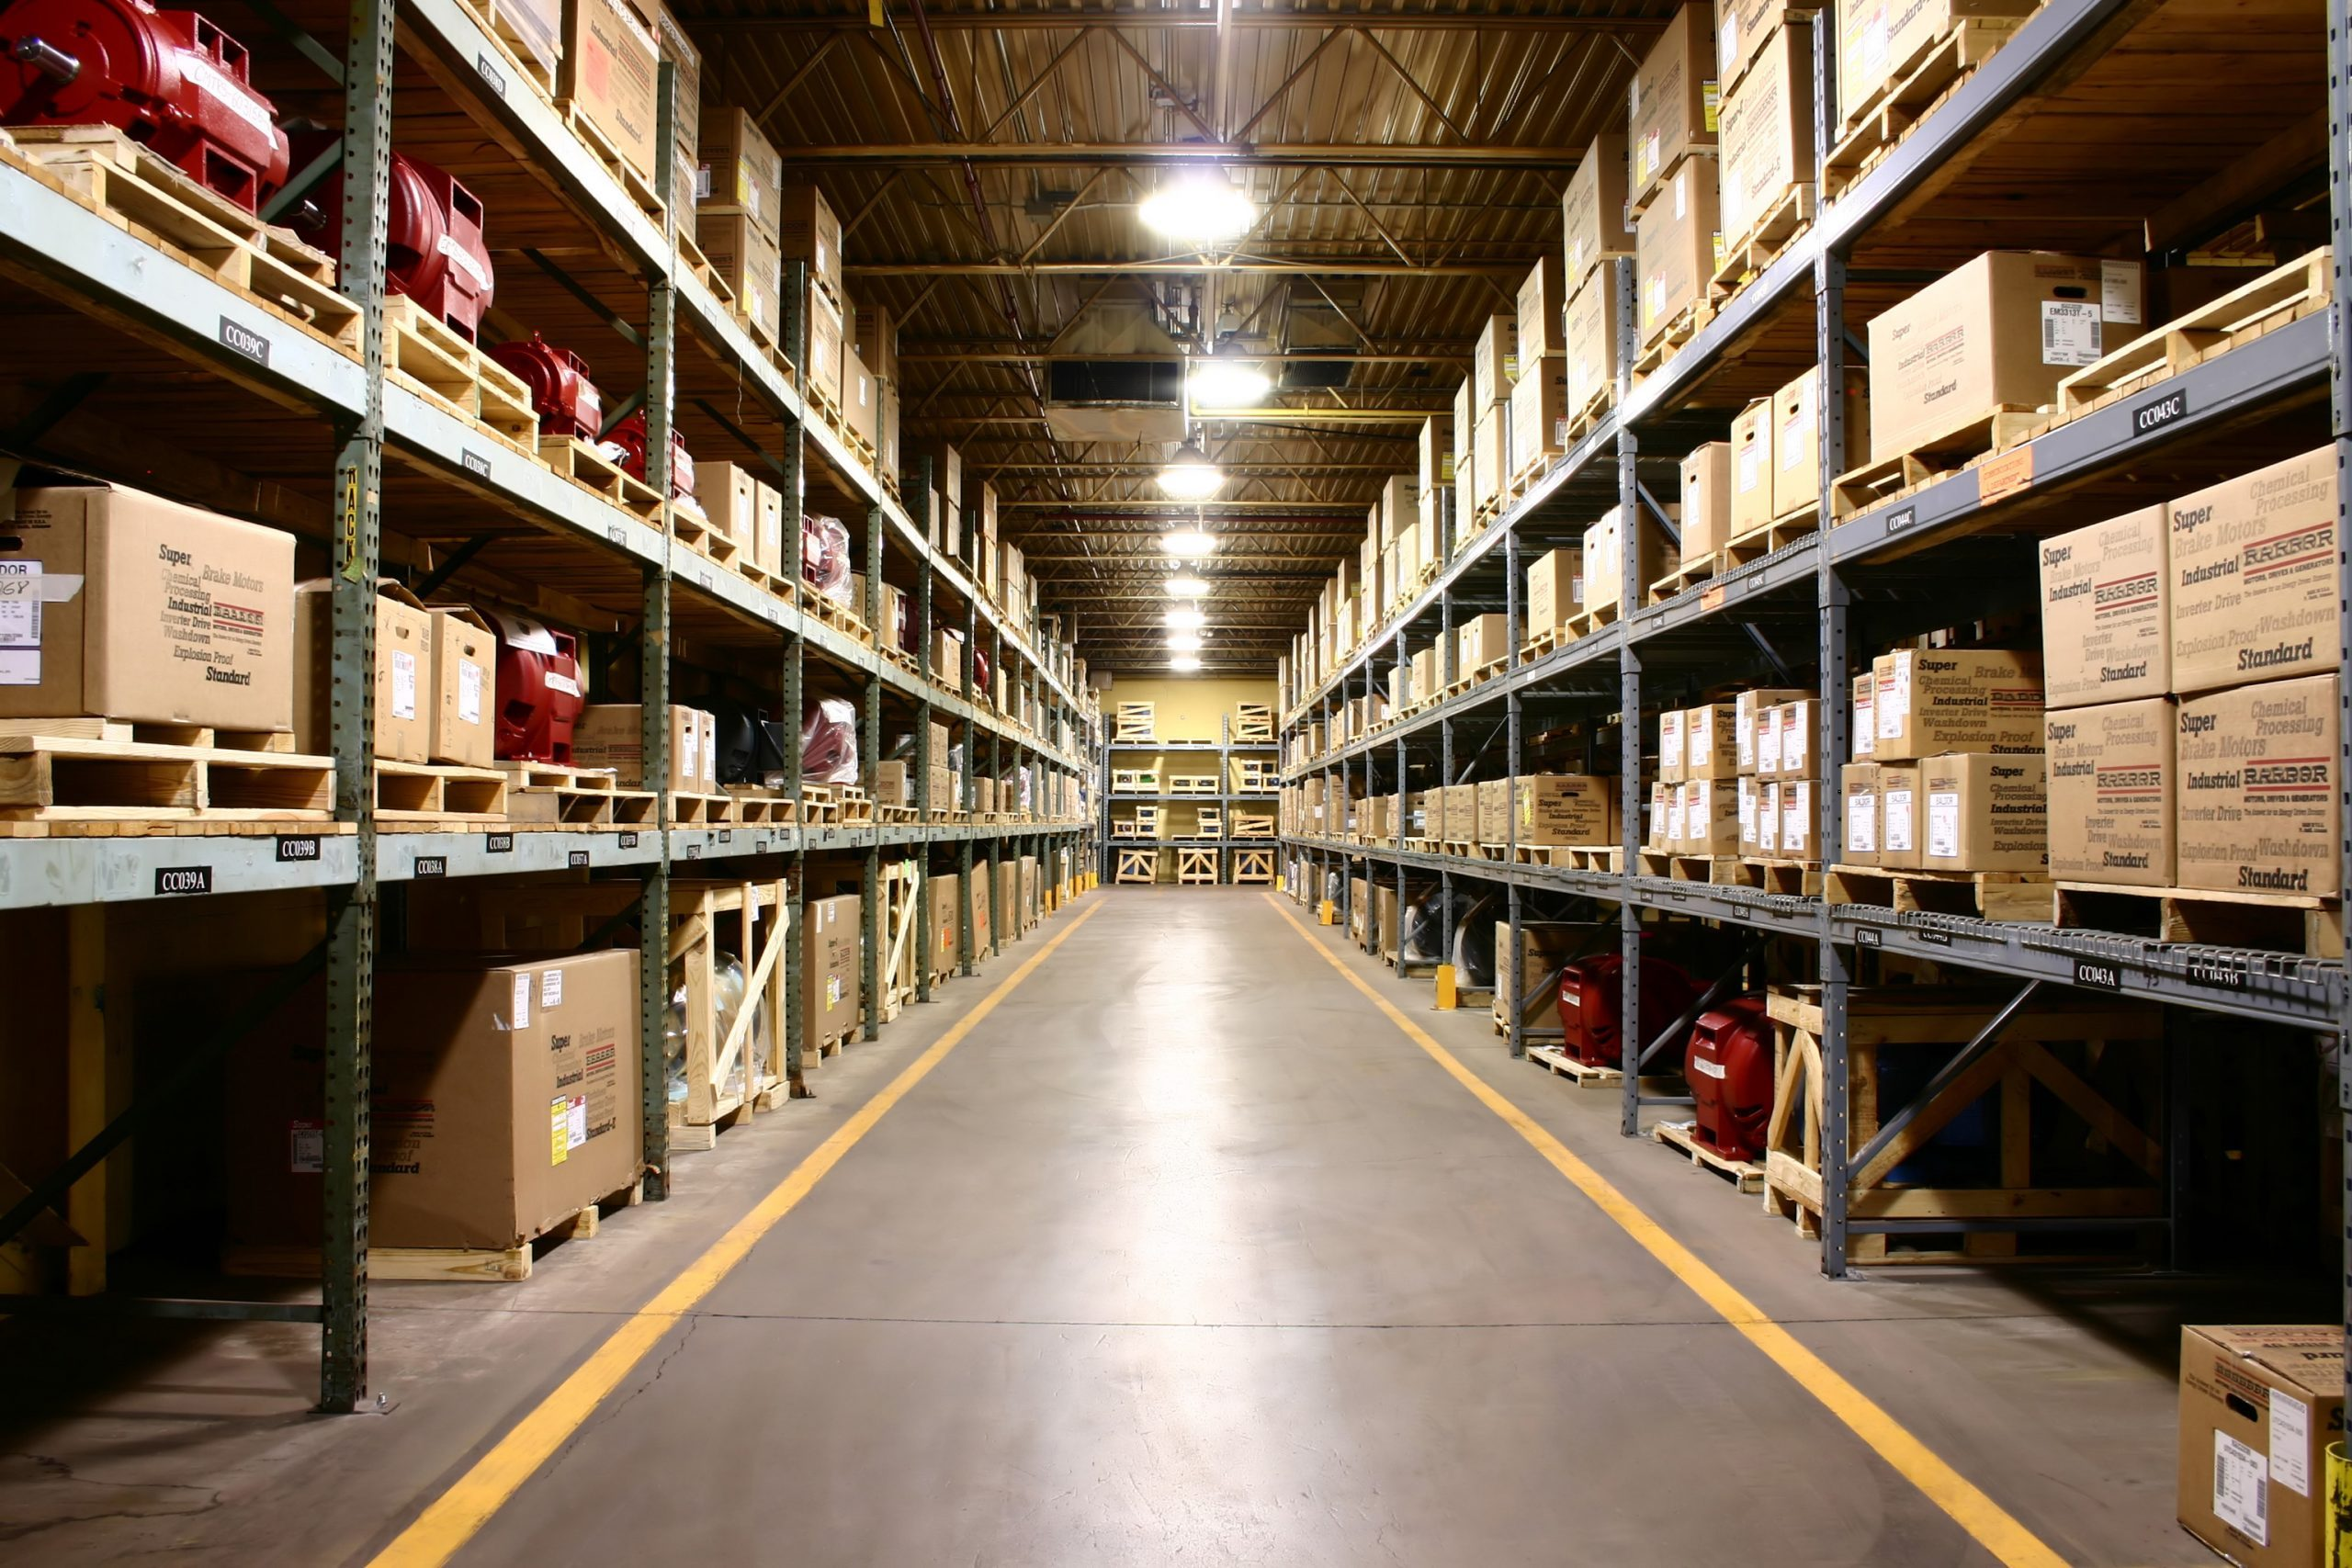 Aisle in warehouse with boxes on shelves.